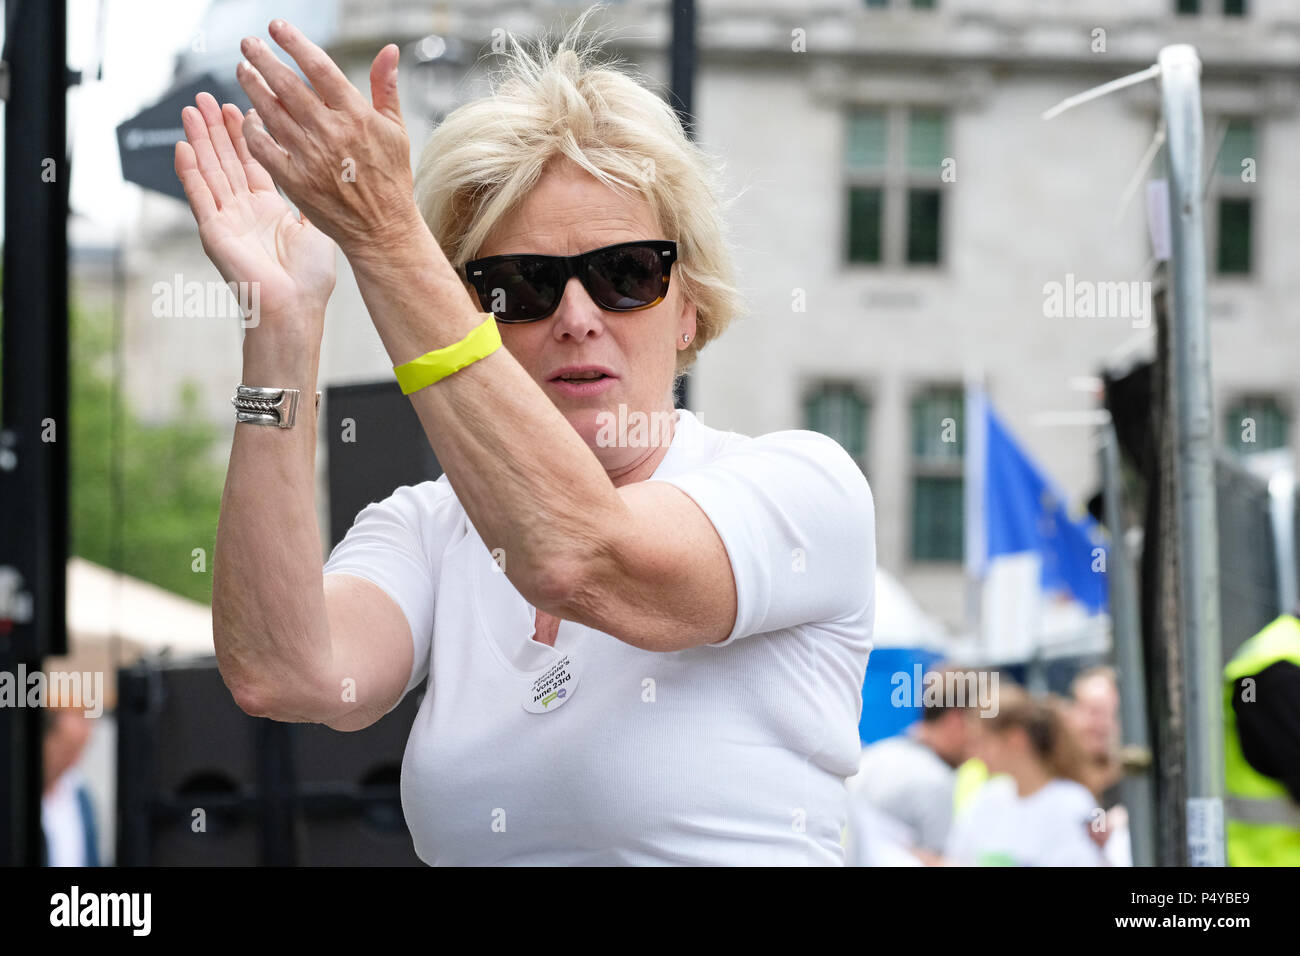 People's Vote march London, UK,  23rd June 2018. - Conservative MP Anna Soubry backstage applauding the speakers at the People's Vote demonstration as they demand a second vote on the final Brexit deal - Steven May /Alamy Live News - Stock Image